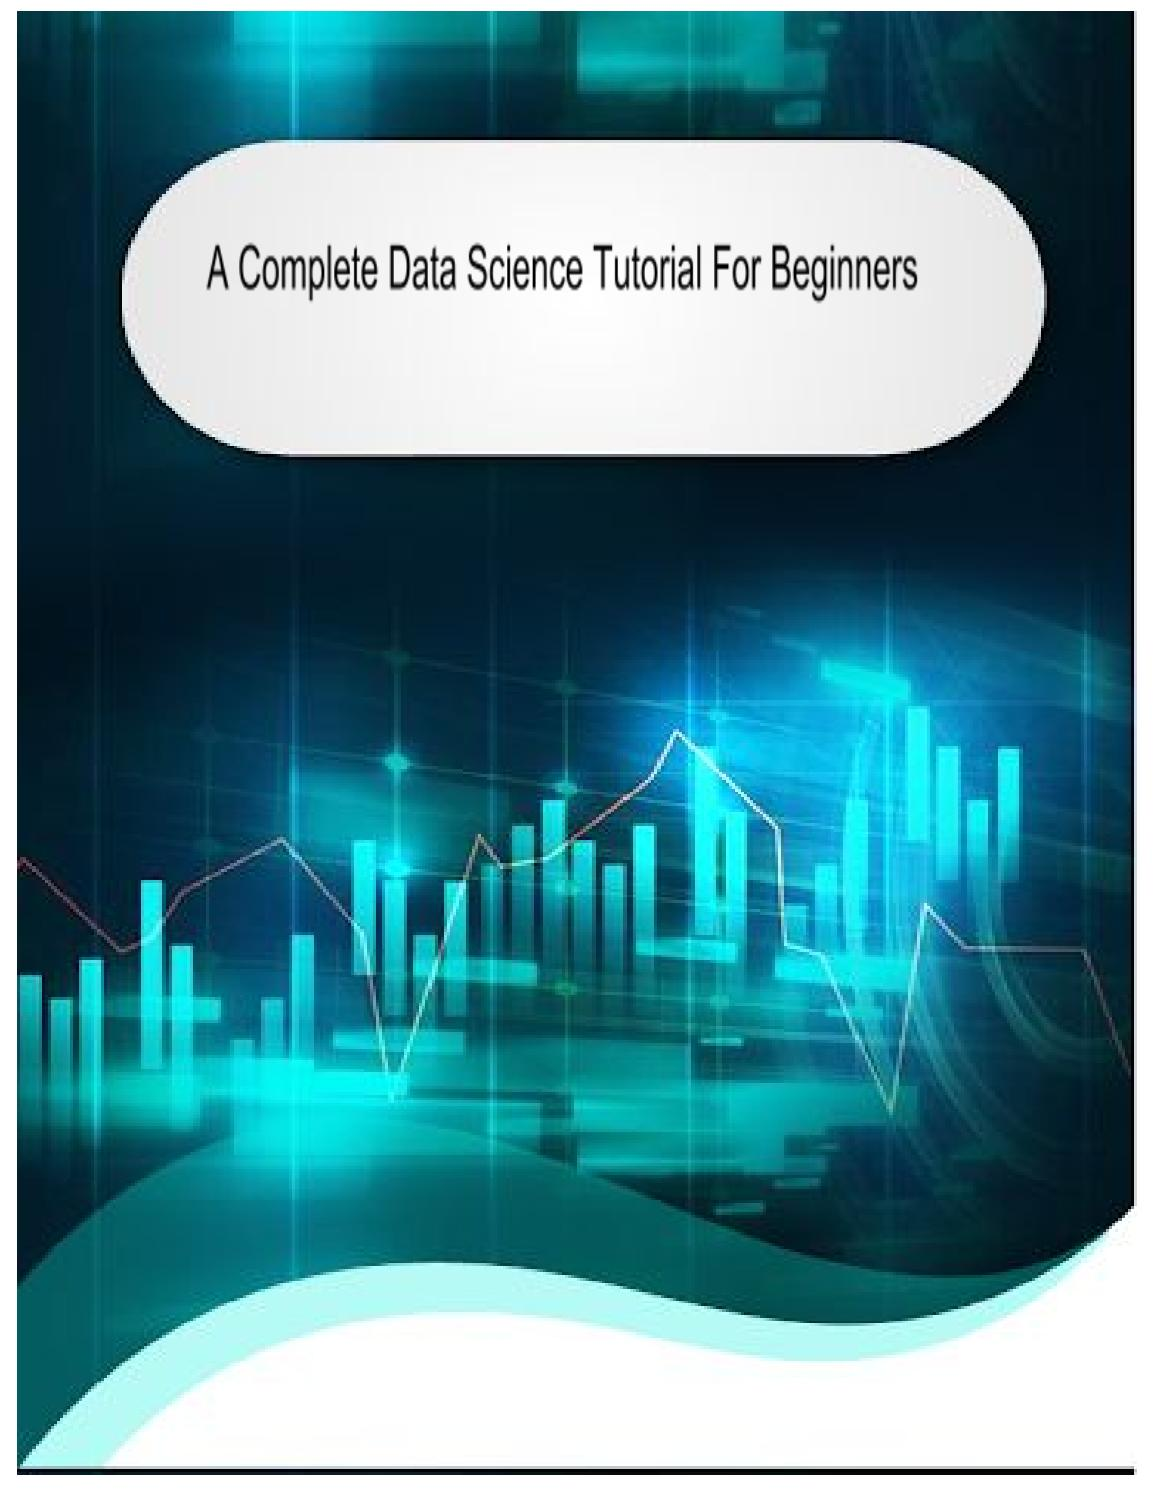 The Complete Data Science Tutorial by aakash bachheriya123